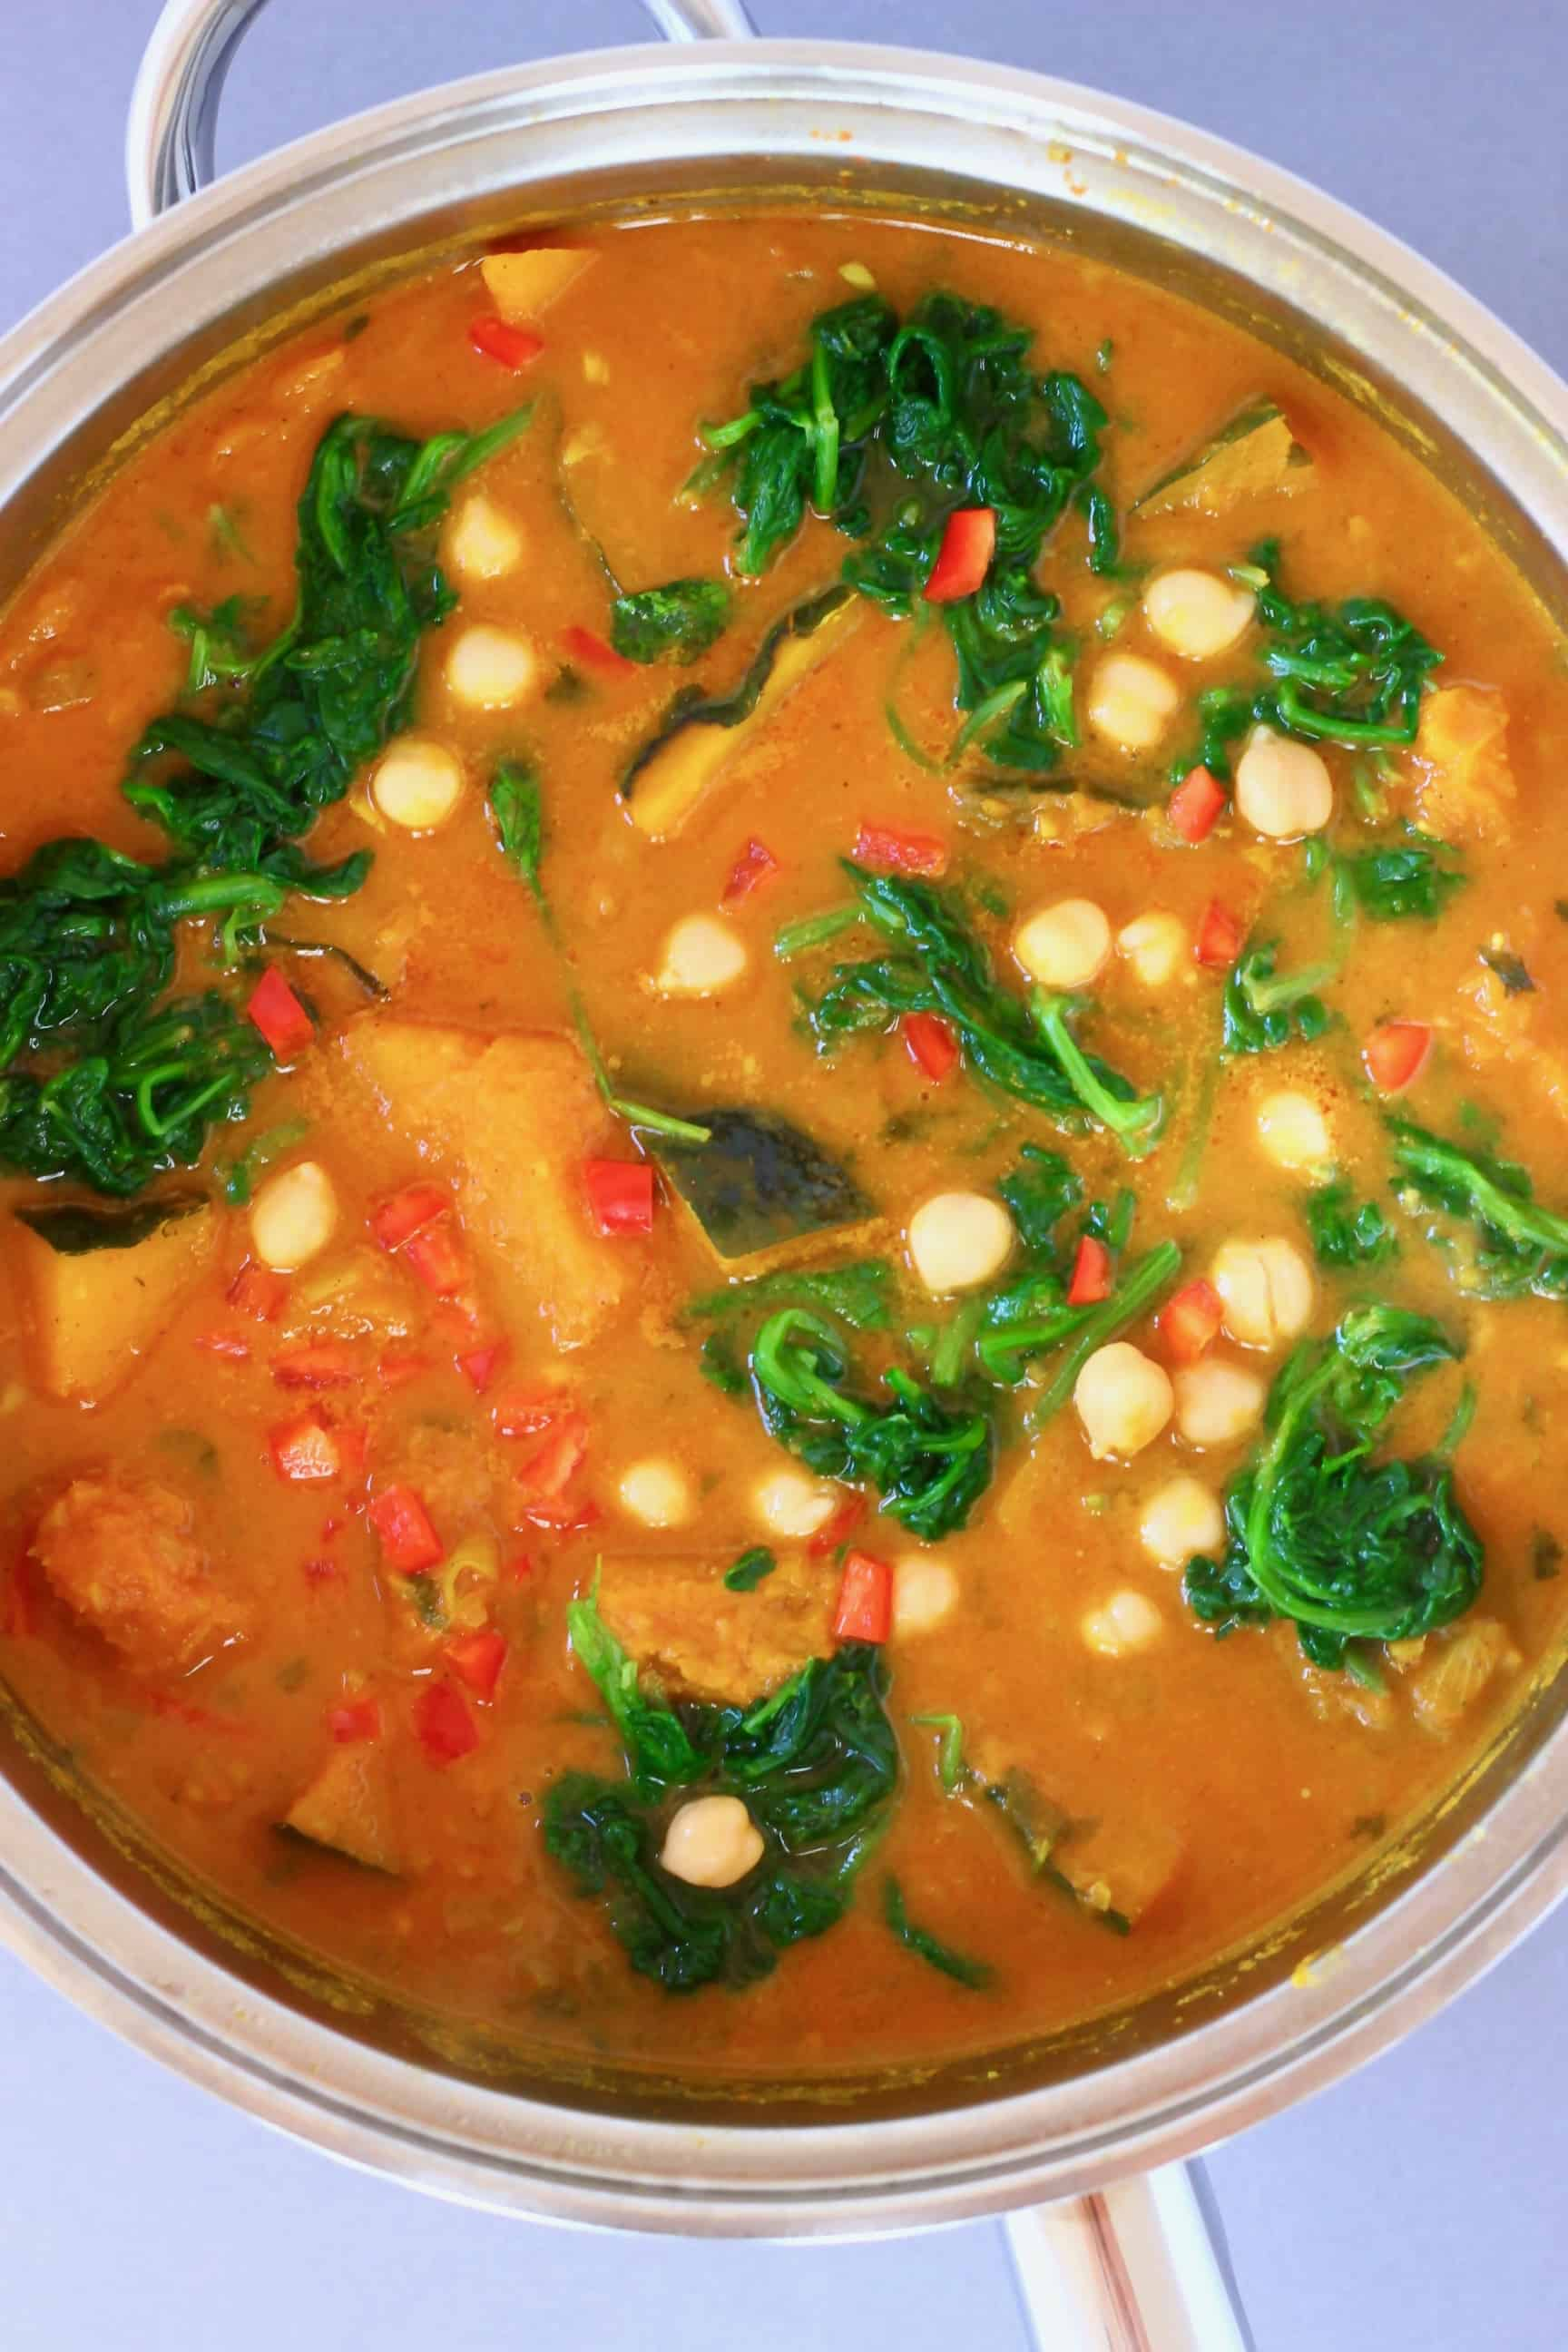 Diced pumpkin, chickpeas and spinach in an orange curry sauce in a silver saucepan